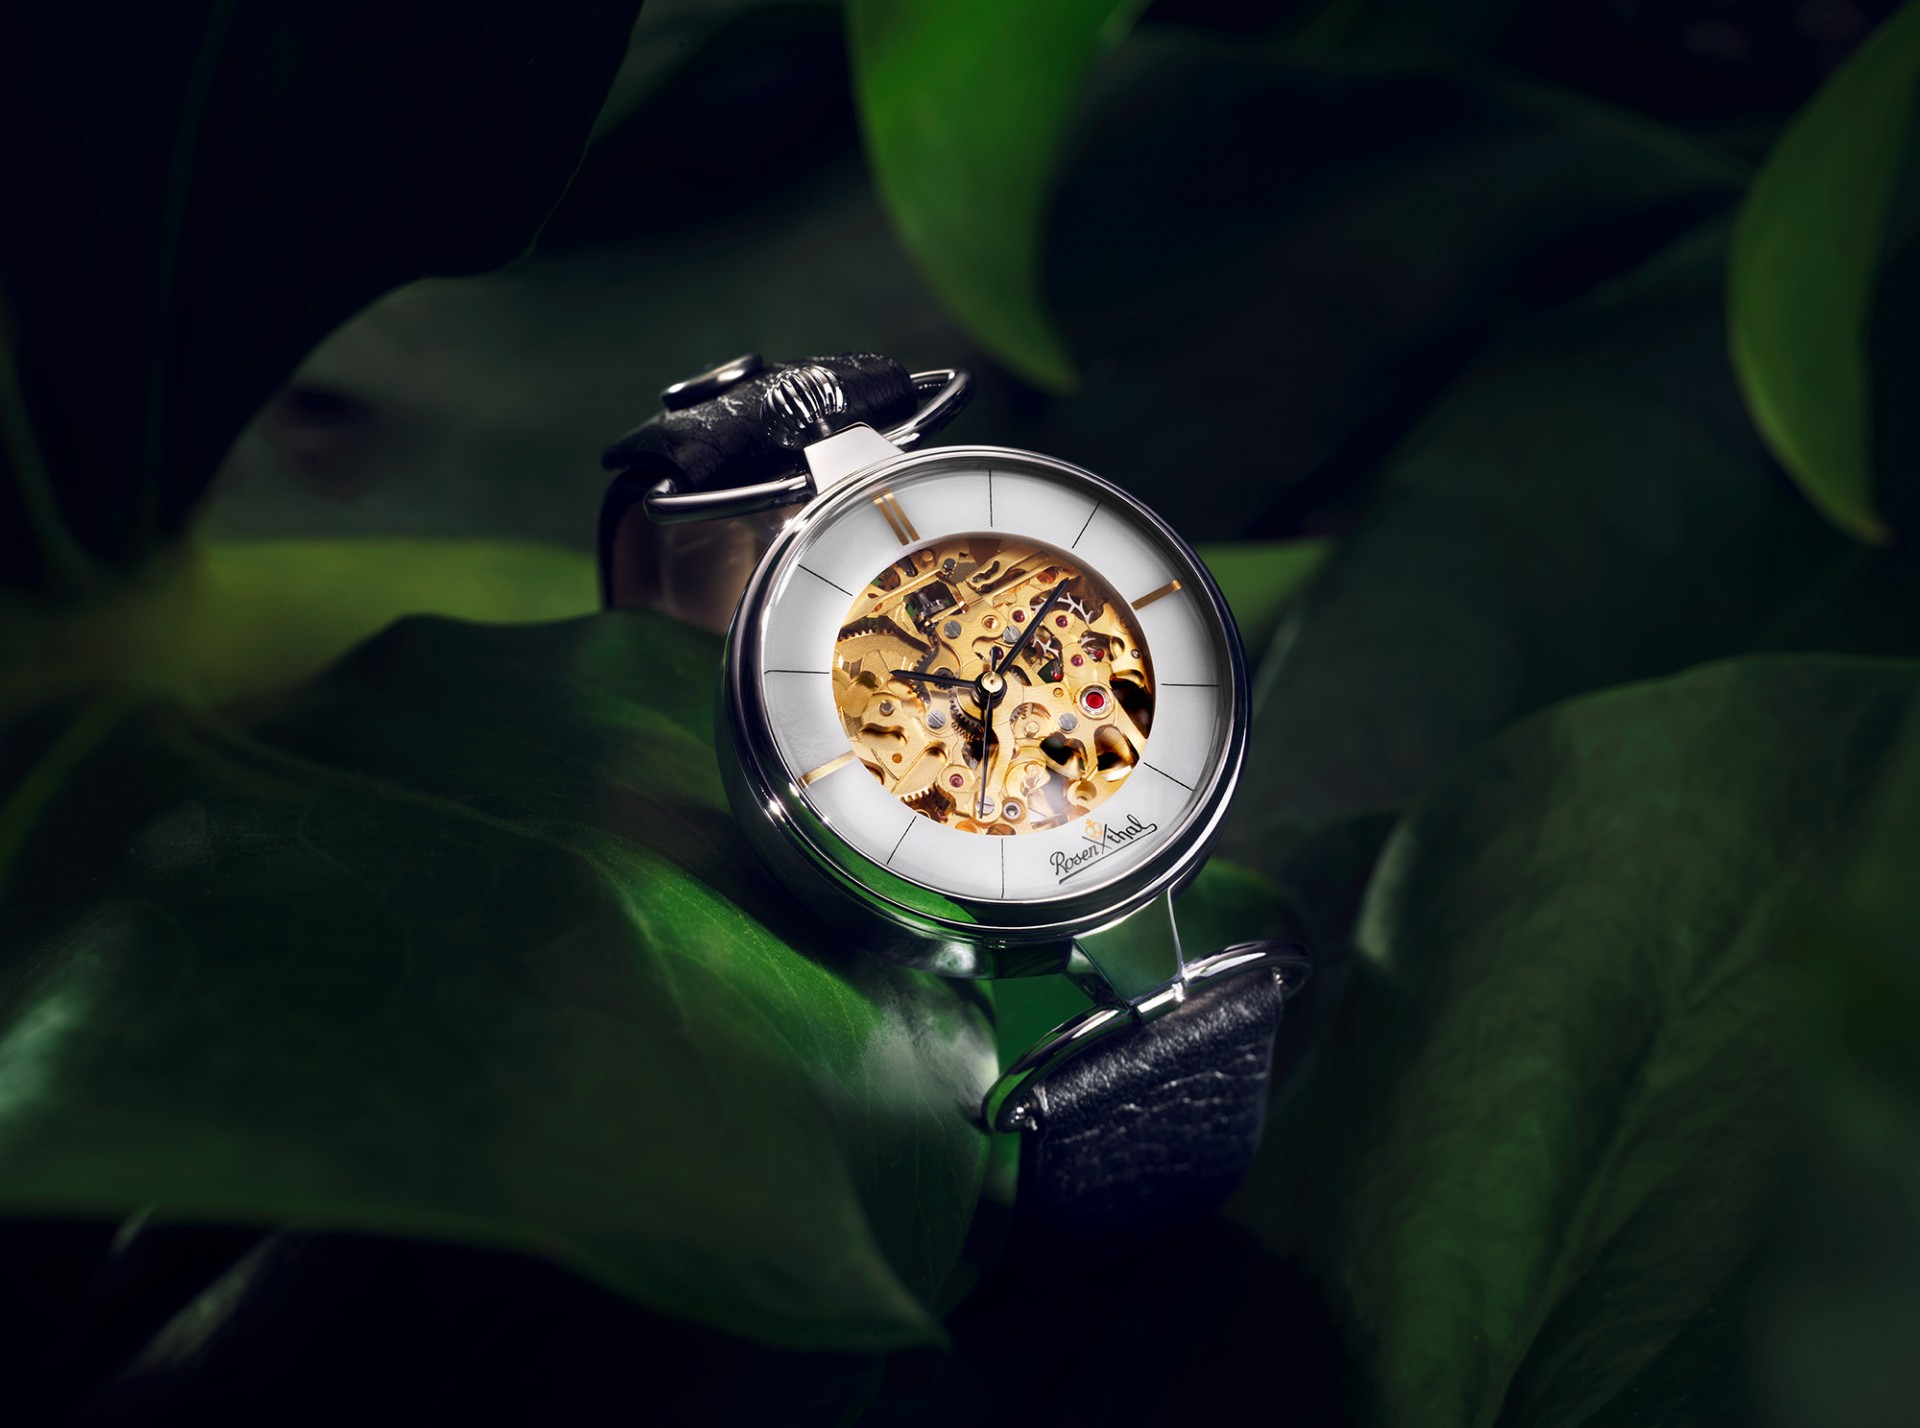 Rosenthal Watches